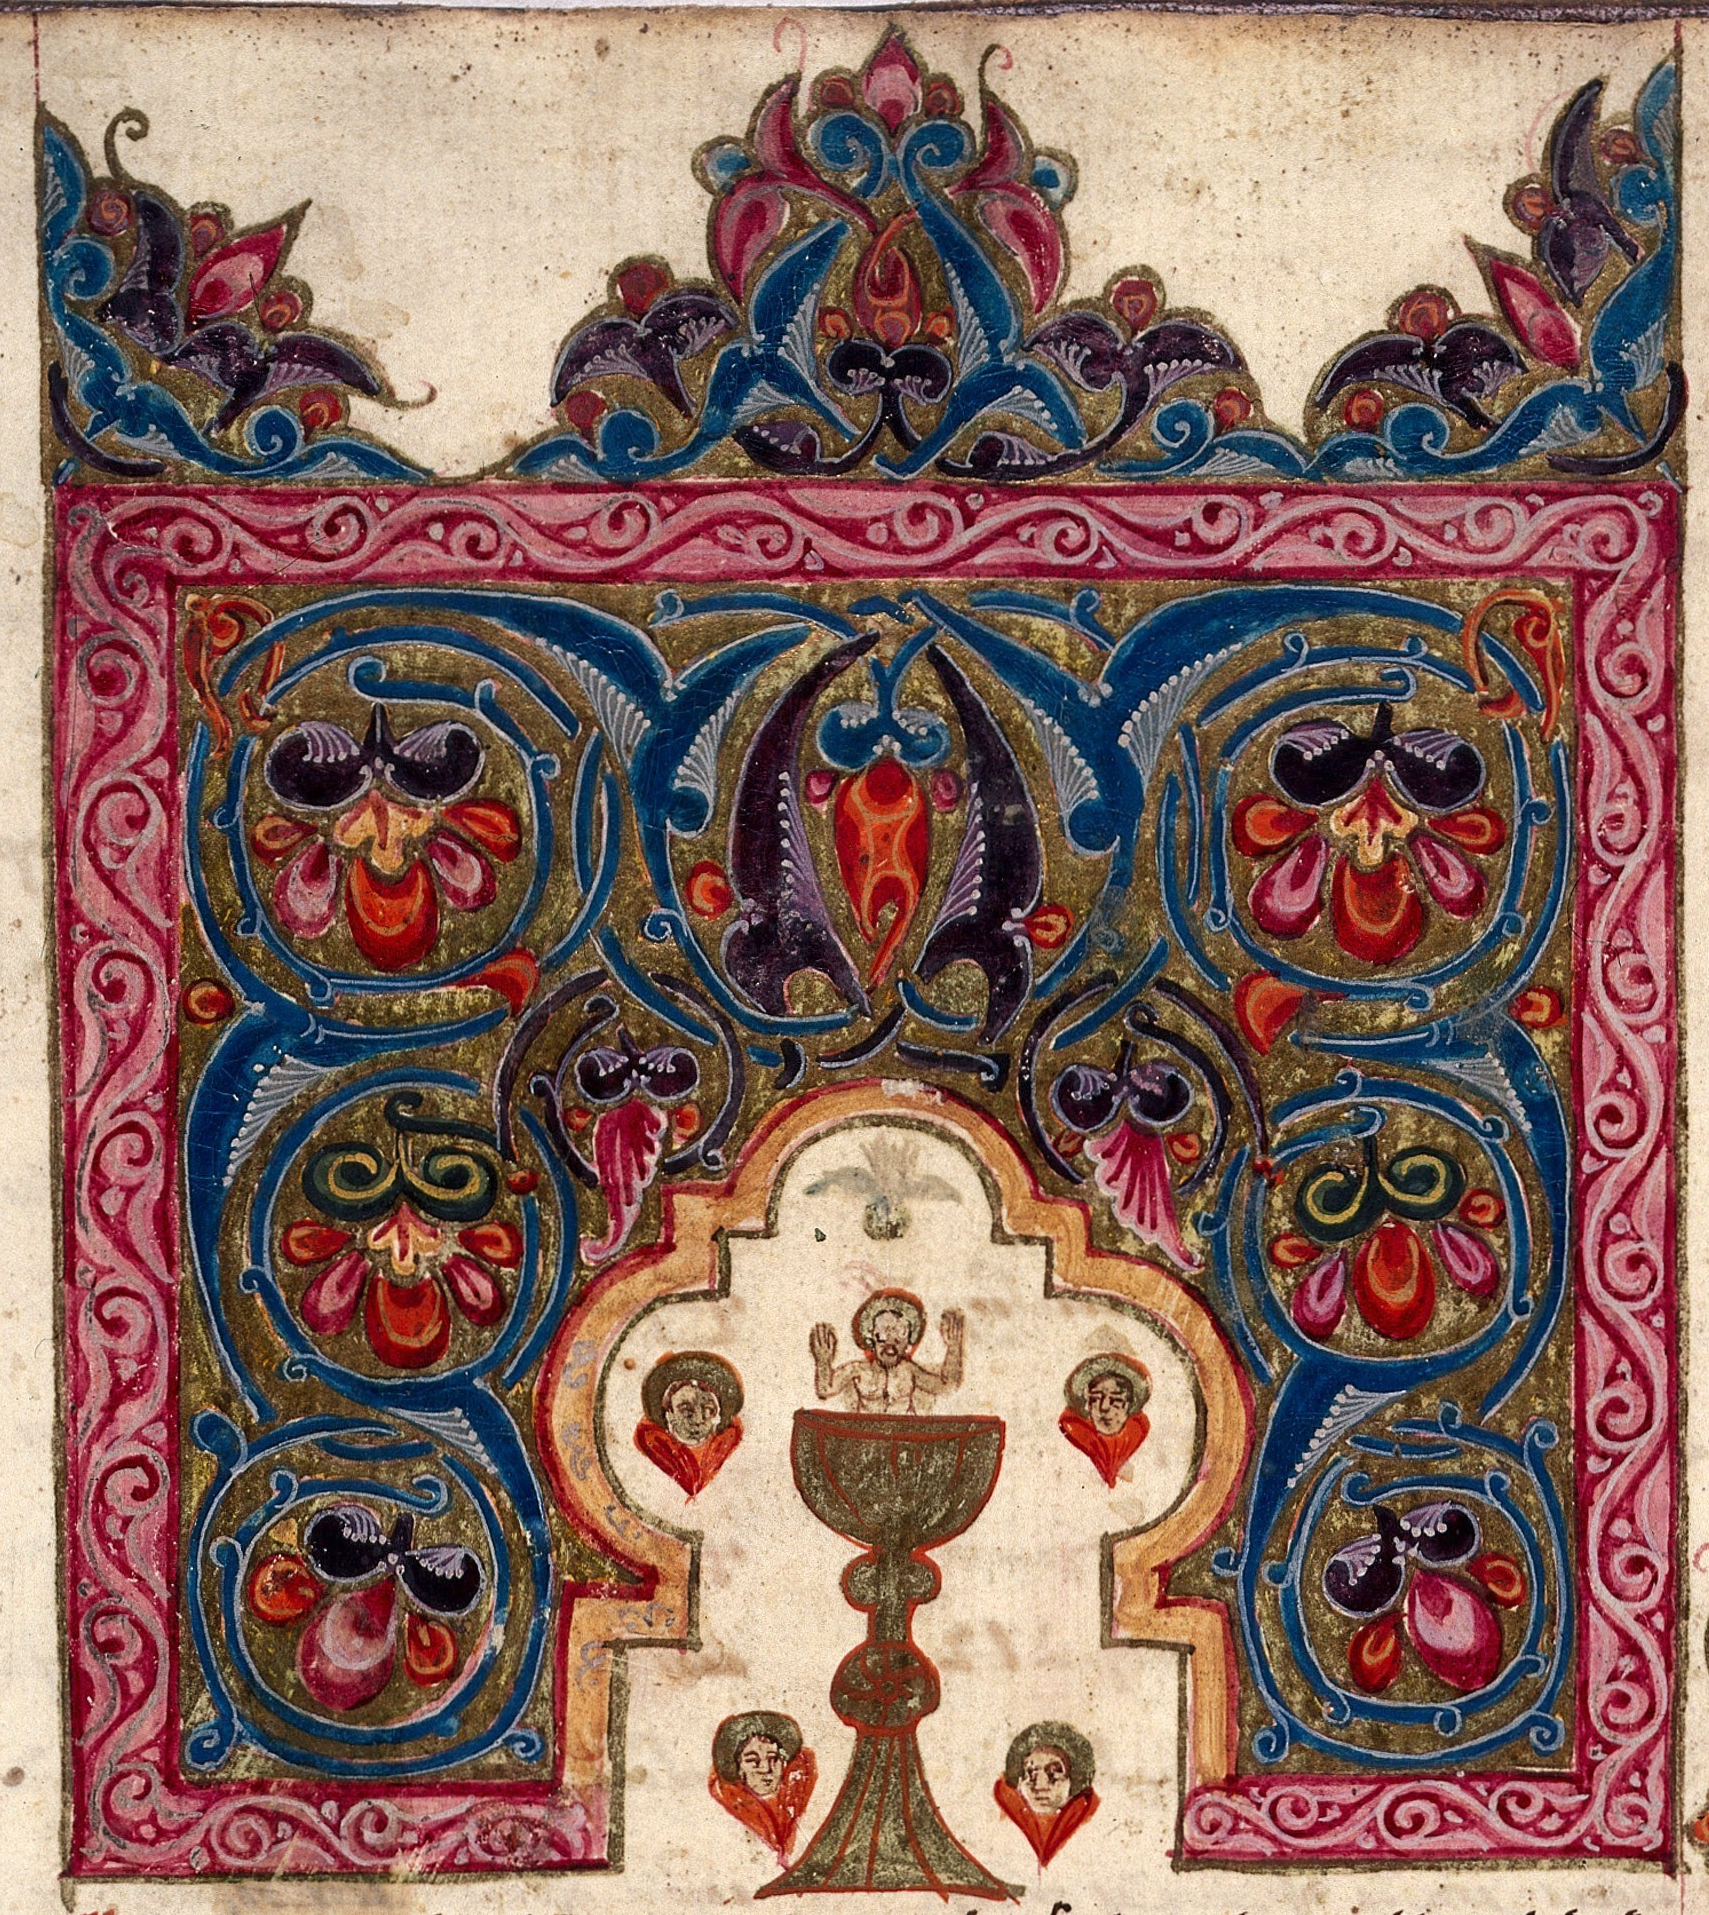 Armenian MS 11, folio 2 recto